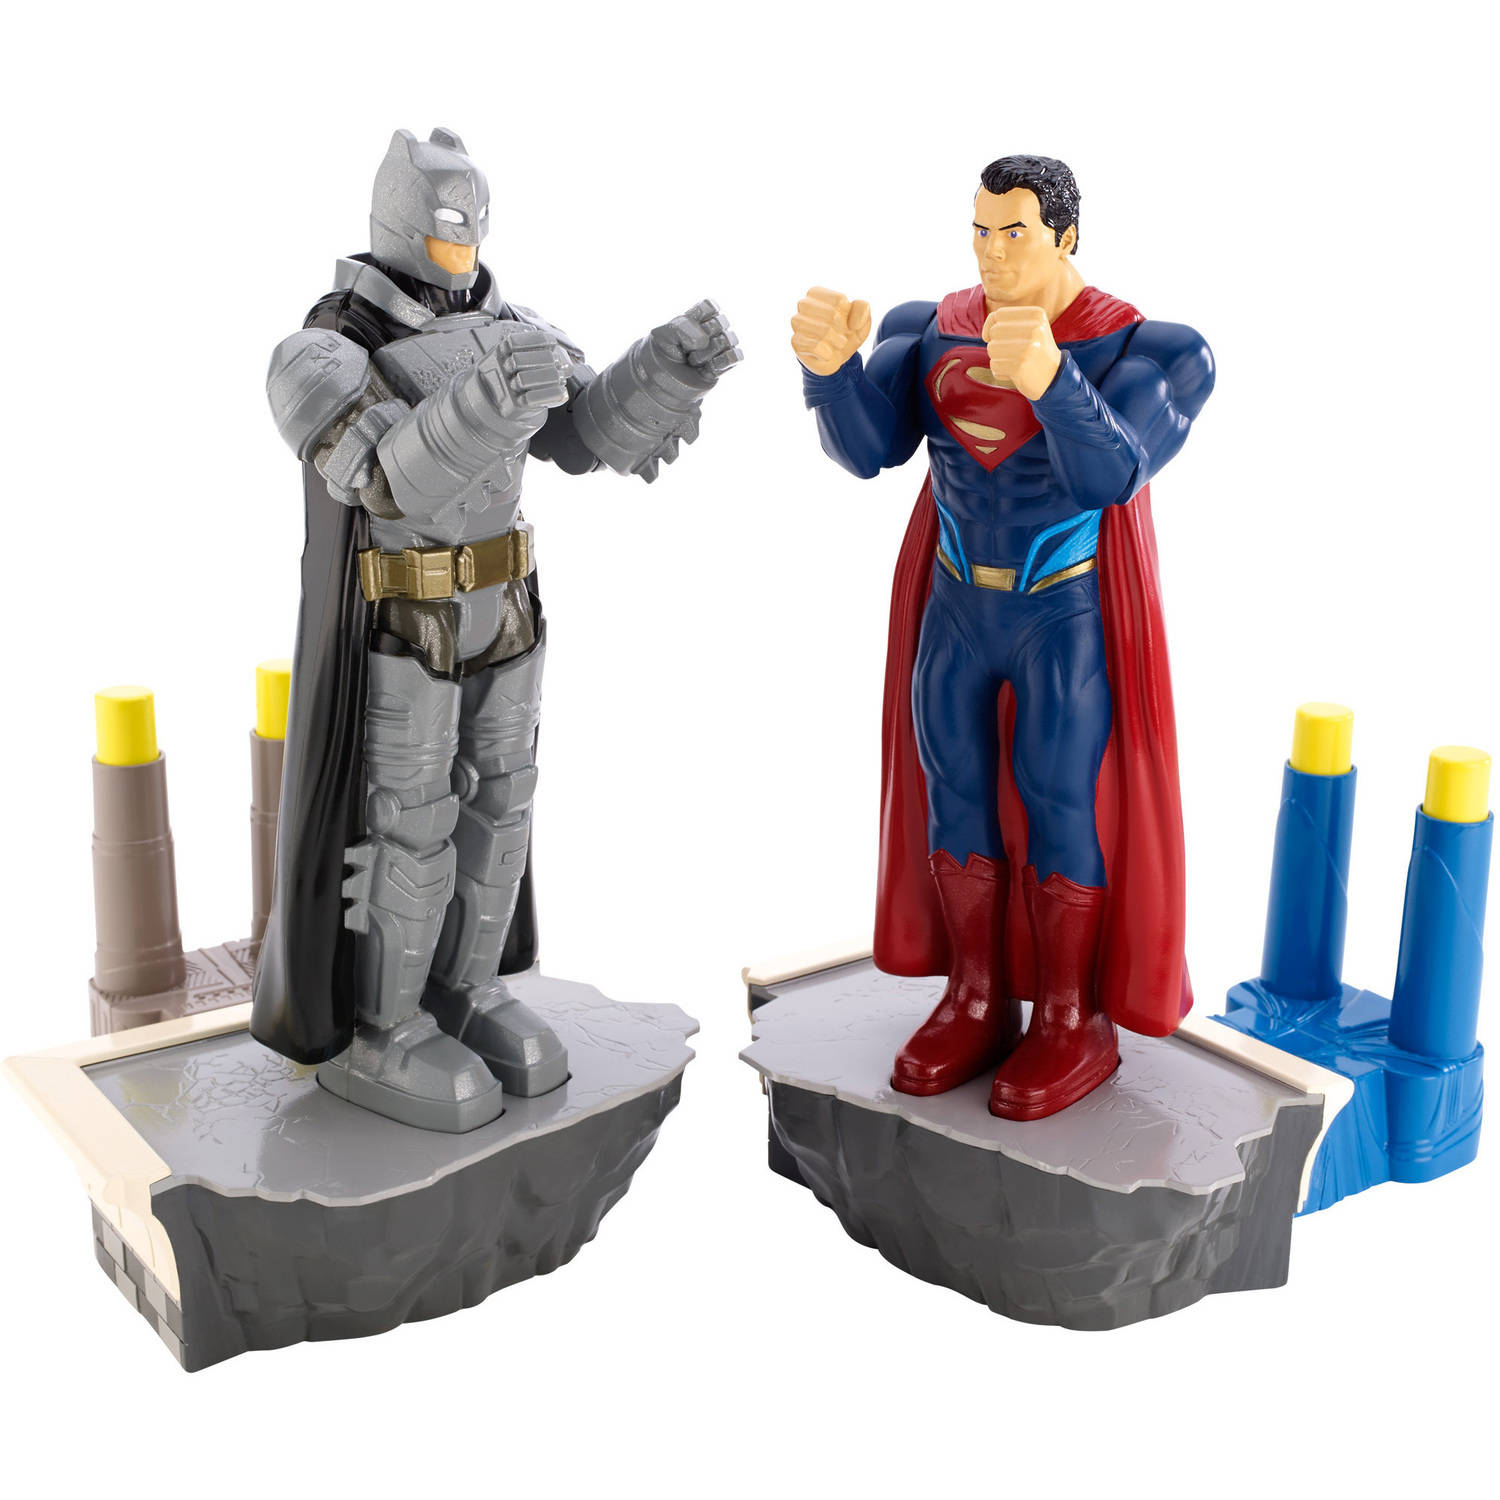 Rock 'Em Sock 'Em Robots Batman V Superman by Mattel